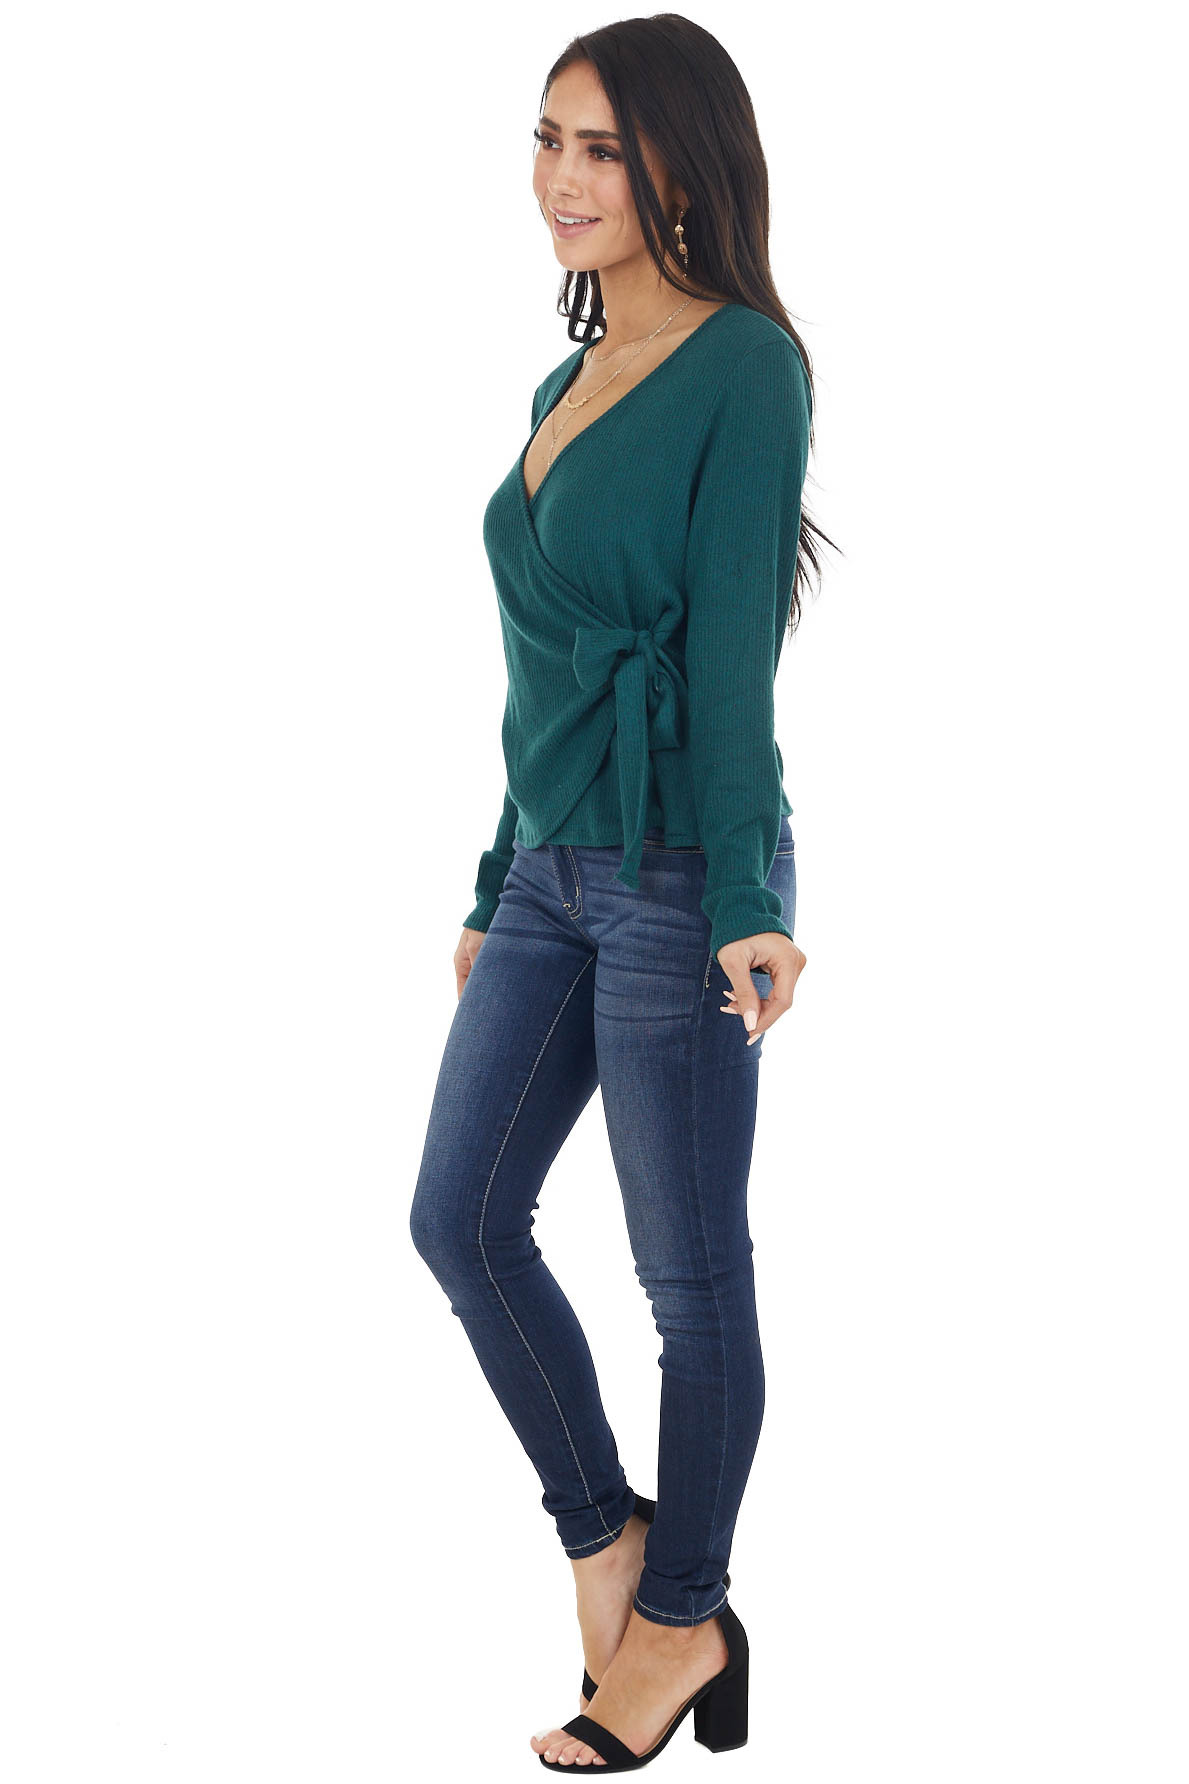 Pine Brushed Ribbed Knit Wrapped Surplice Top with Tie